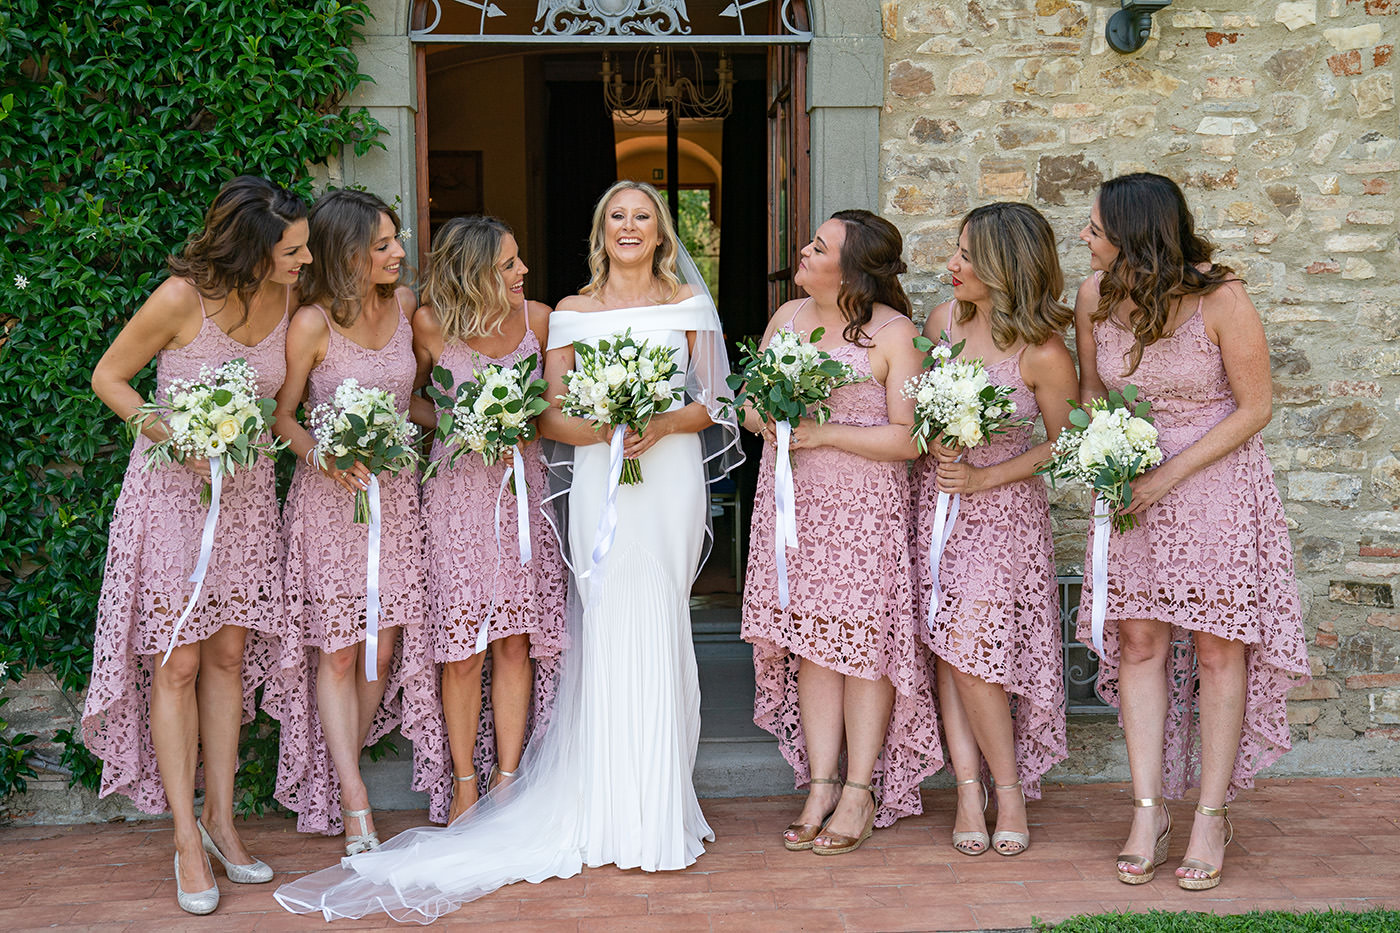 Duccio Argentini: Tuscan Wedding Photo Shoots At Palagio Castle. Bridesmandes with the bride